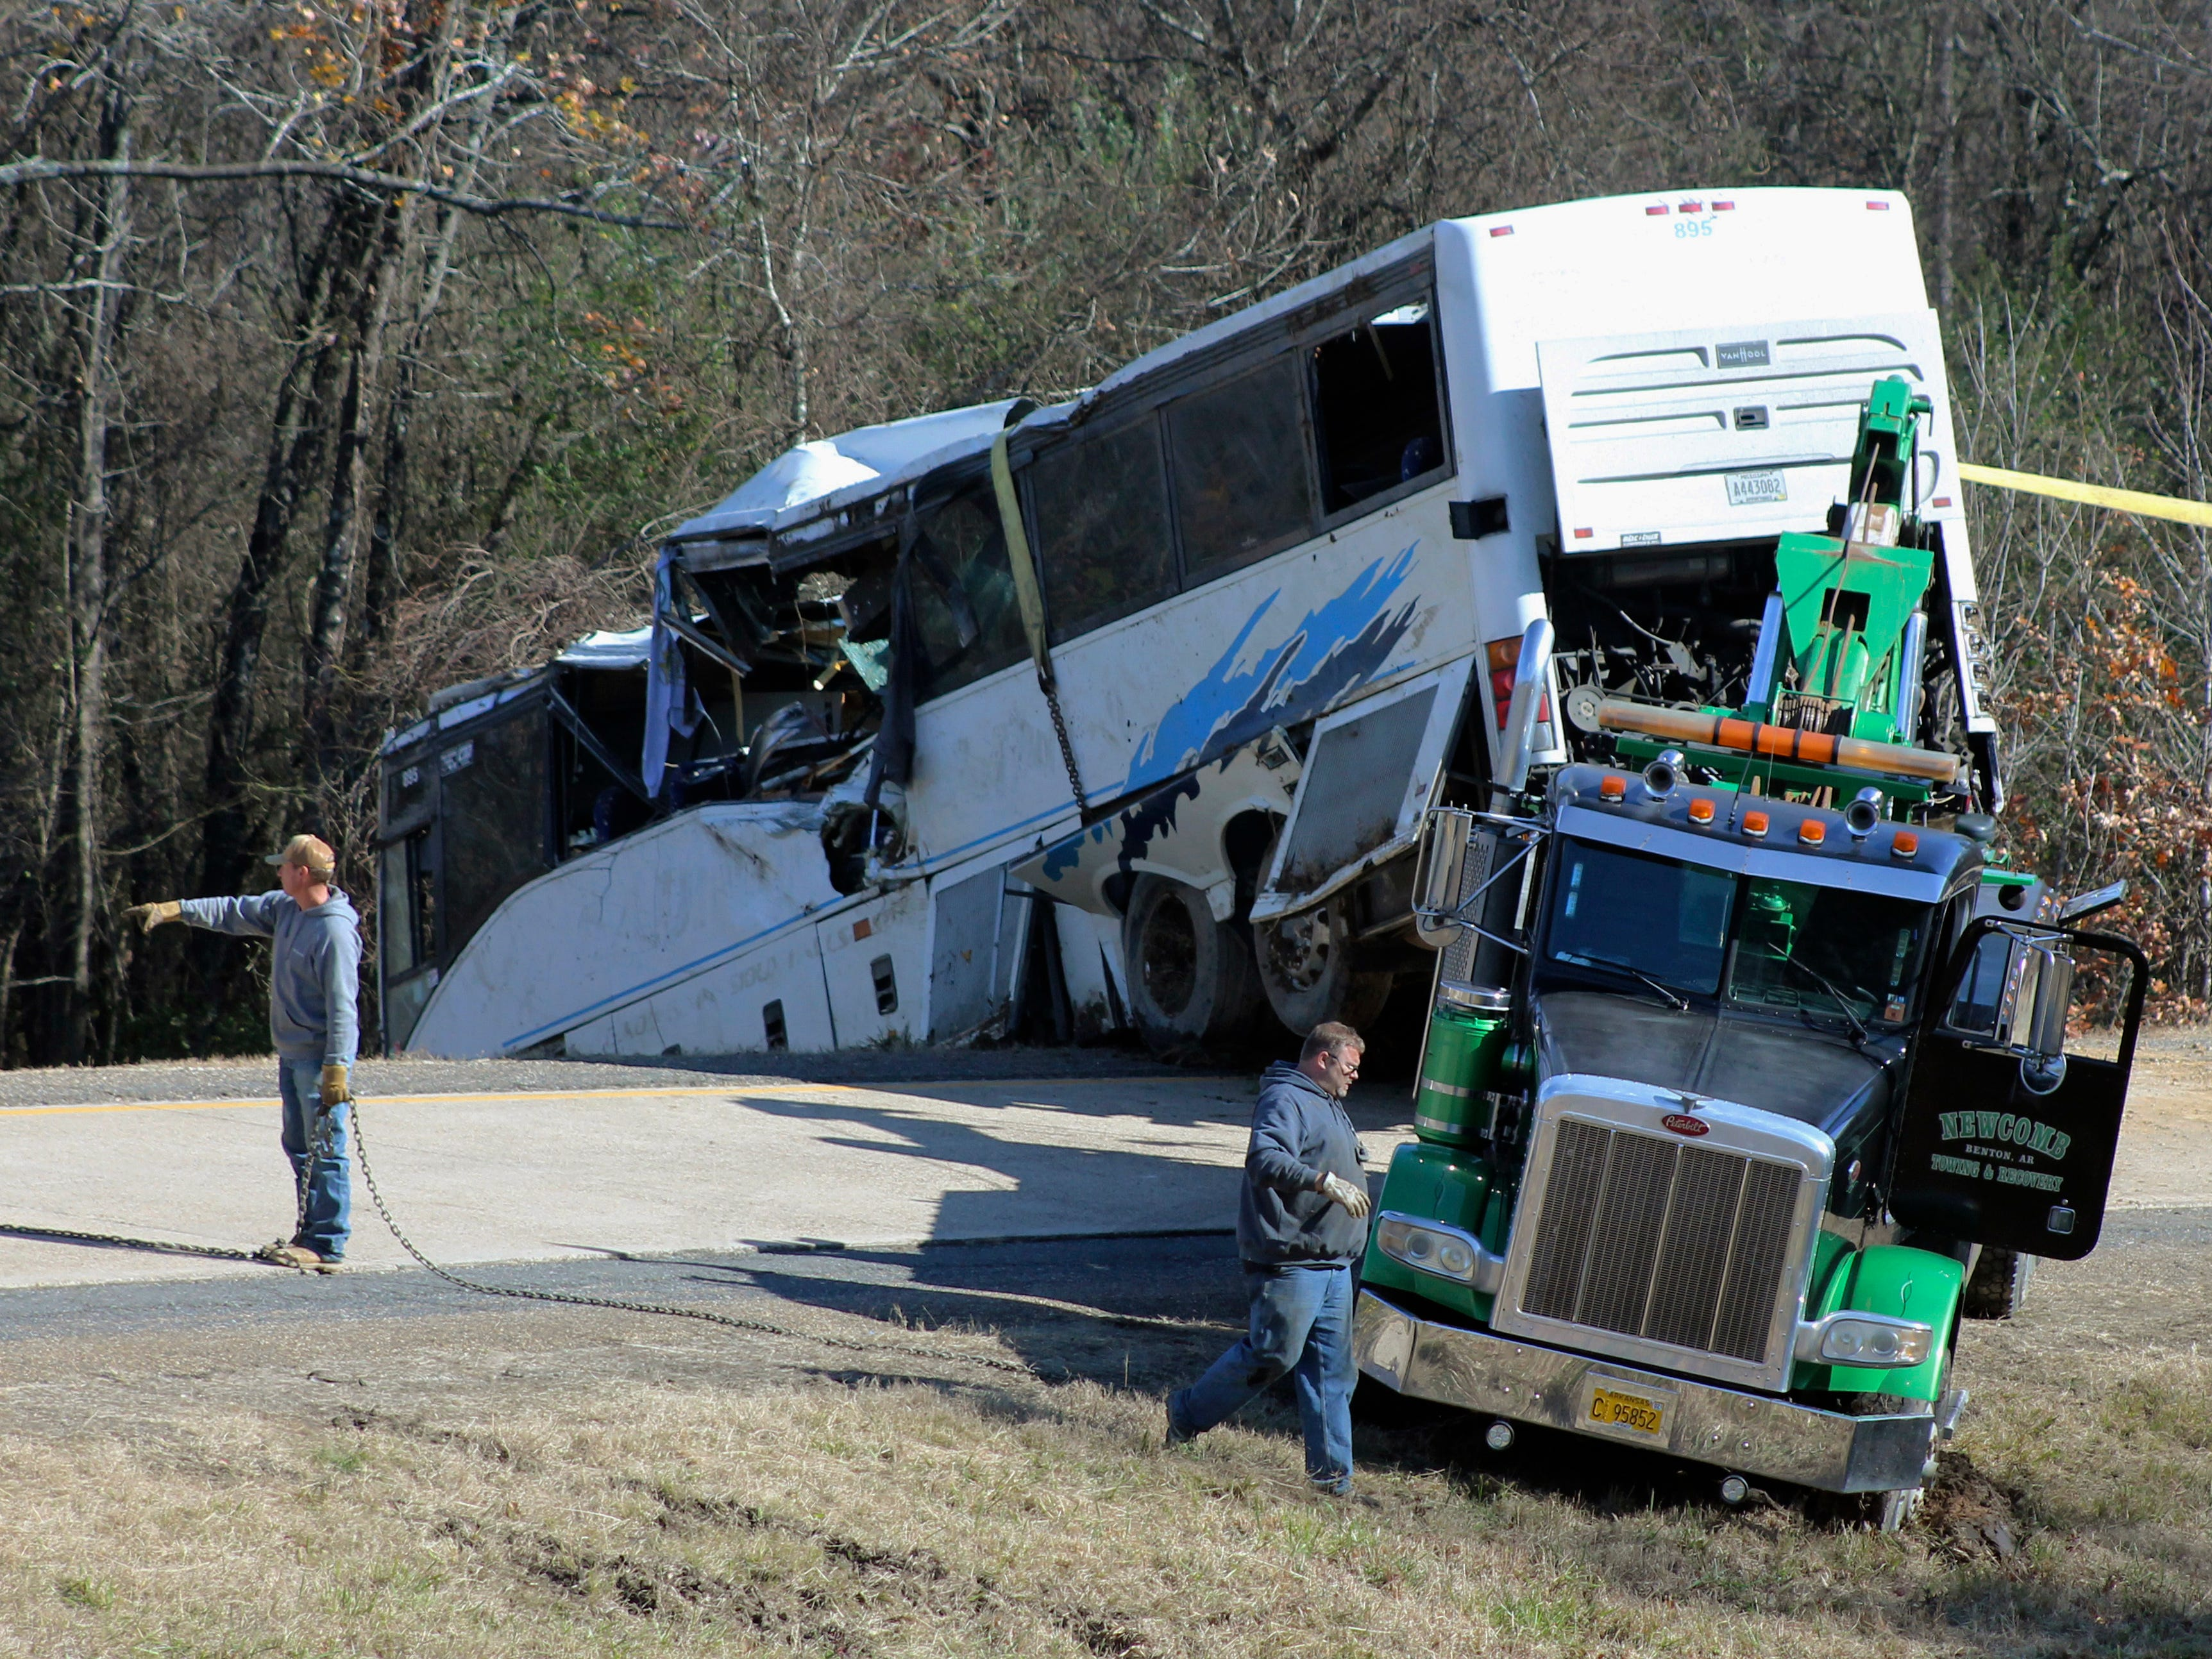 Employees from a wrecker service work to remove a charter bus from a roadside ditch Monday, Dec. 3, 2018, after it crashed alongside Interstate 30 near Benton, Ark. The bus was carrying a youth football team from Tennessee when it rolled off an interstate off-ramp and overturned before sunrise Monday. The elementary-school age football team from Orange Mound Youth Association in southeast Memphis had played in a tournament in Dallas over the weekend.